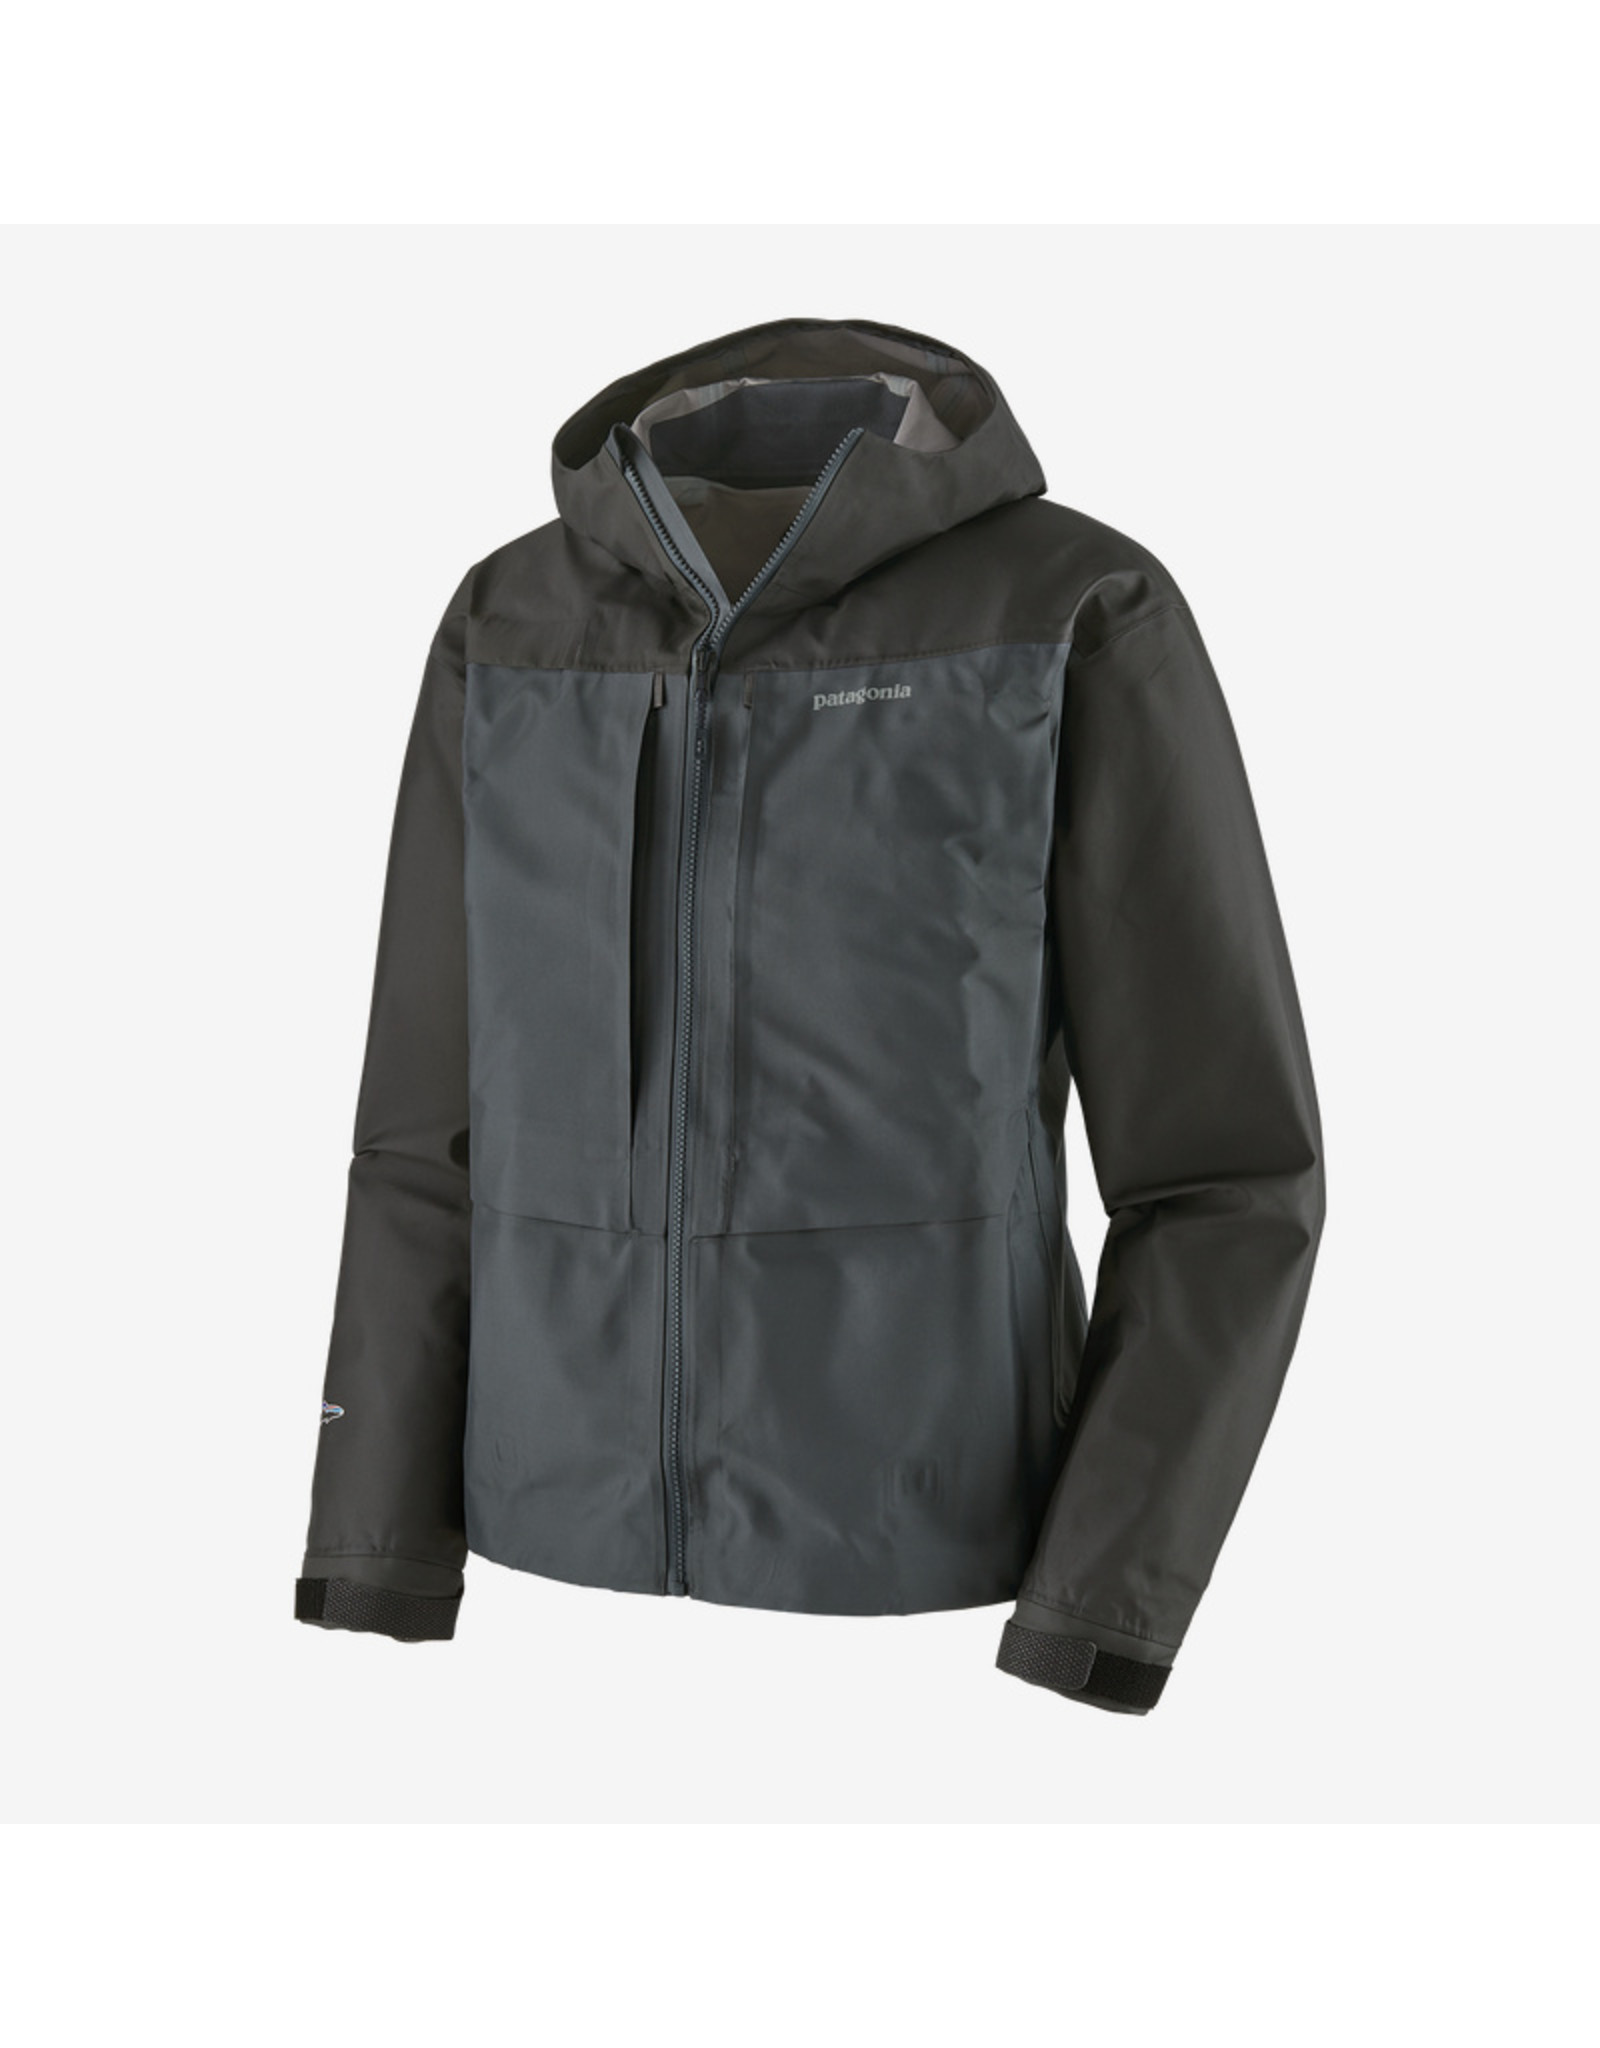 Patagonia Patagonia - Men's River Salt Jacket